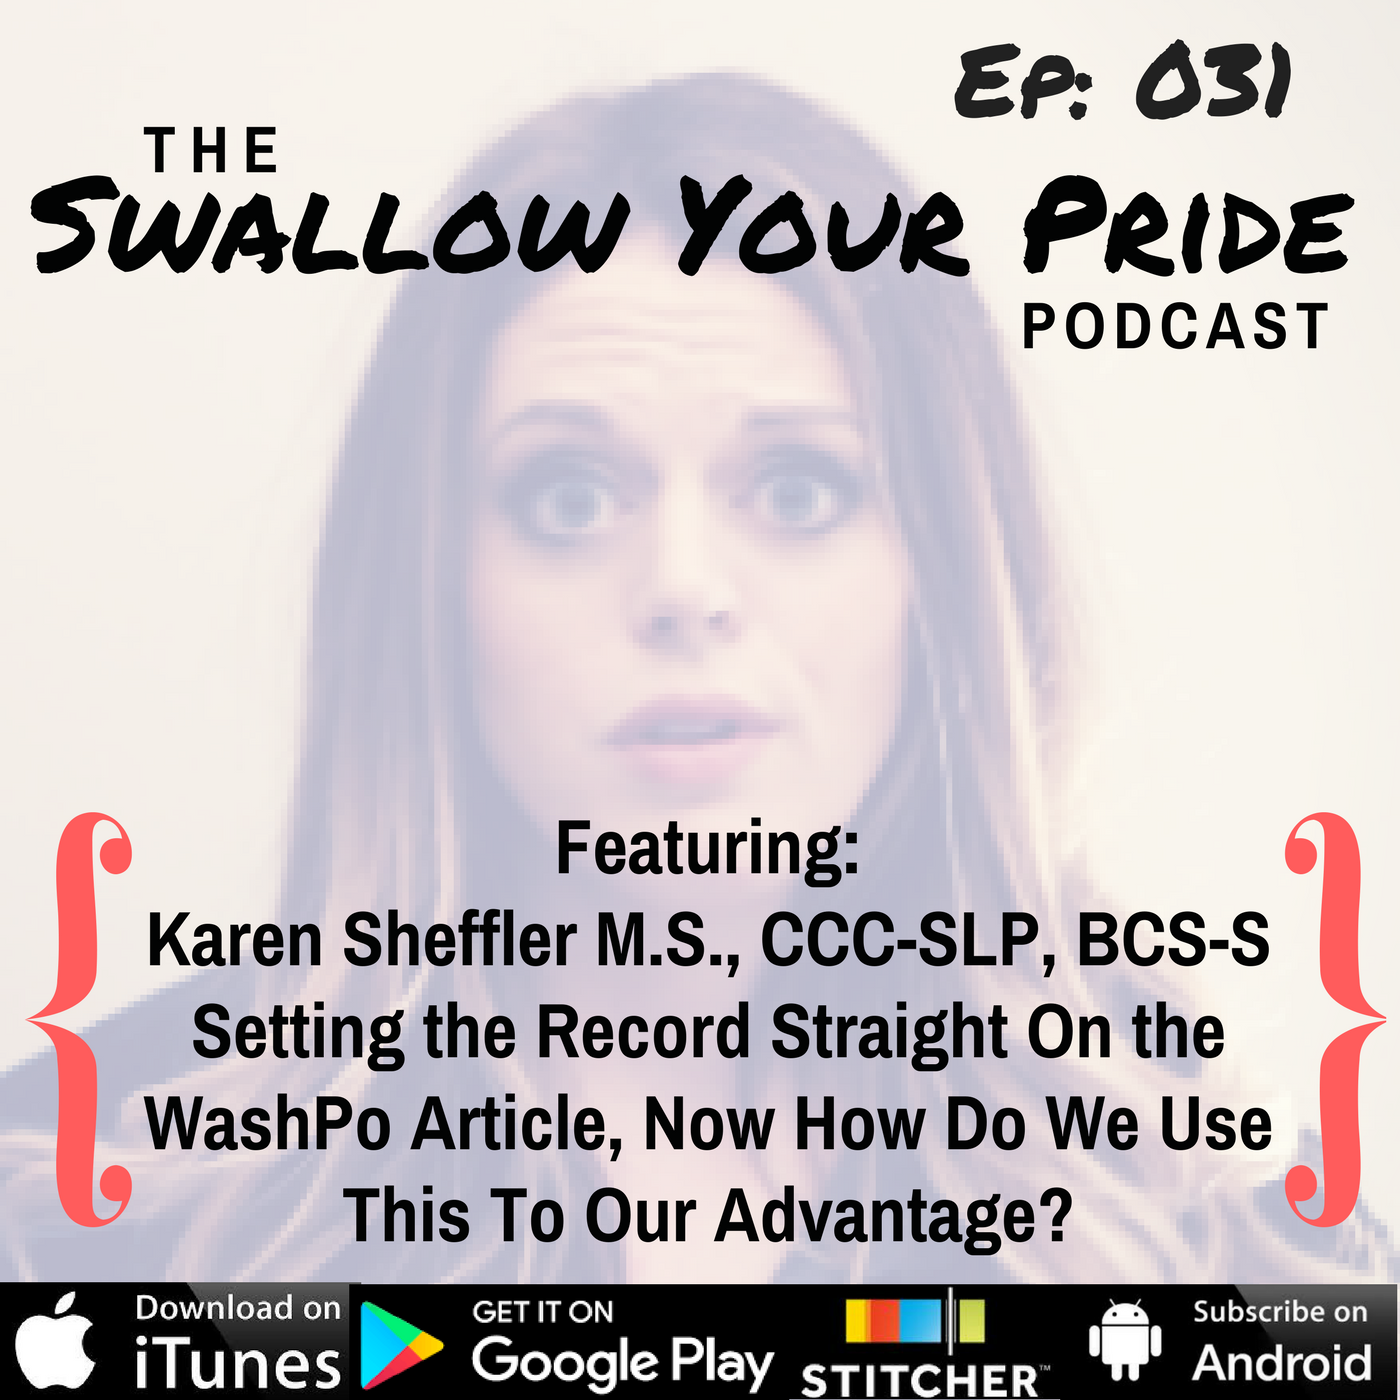 031 – Karen Sheffler M.S., CCC-SLP, BCS-S – Setting the Record Straight On the WashPo Article on 2/25/18, Now How Do We Use This To Our Advantage? An SLP Action Plan to Encourage Education, Advocacy, and Transdisciplinary Care